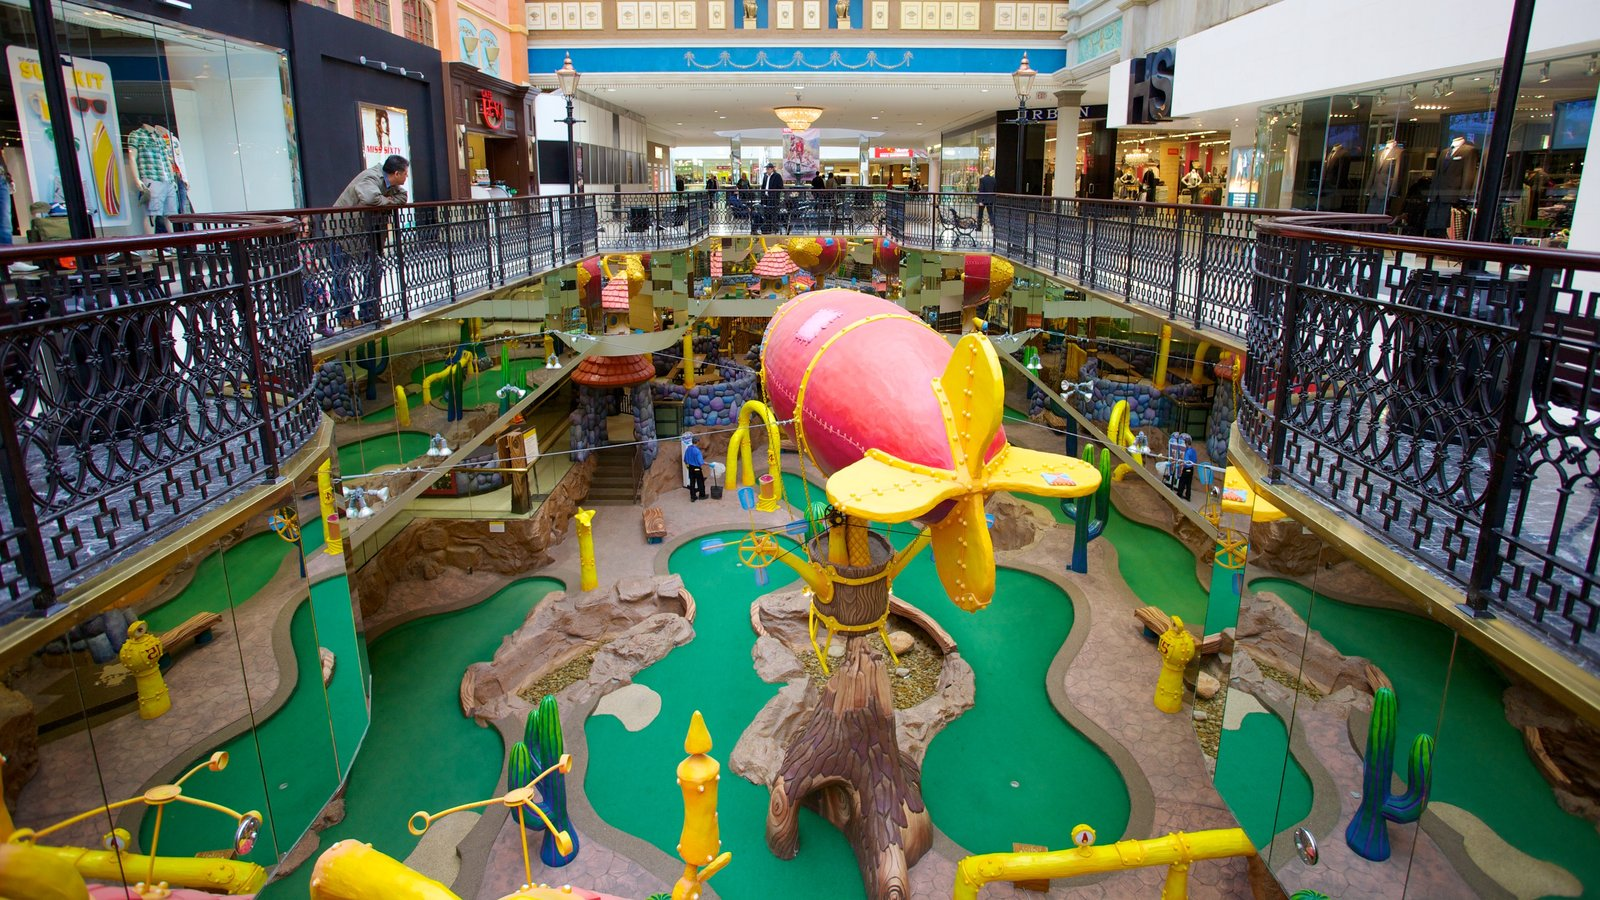 West Edmonton Mall which includes shopping, a playground and interior views